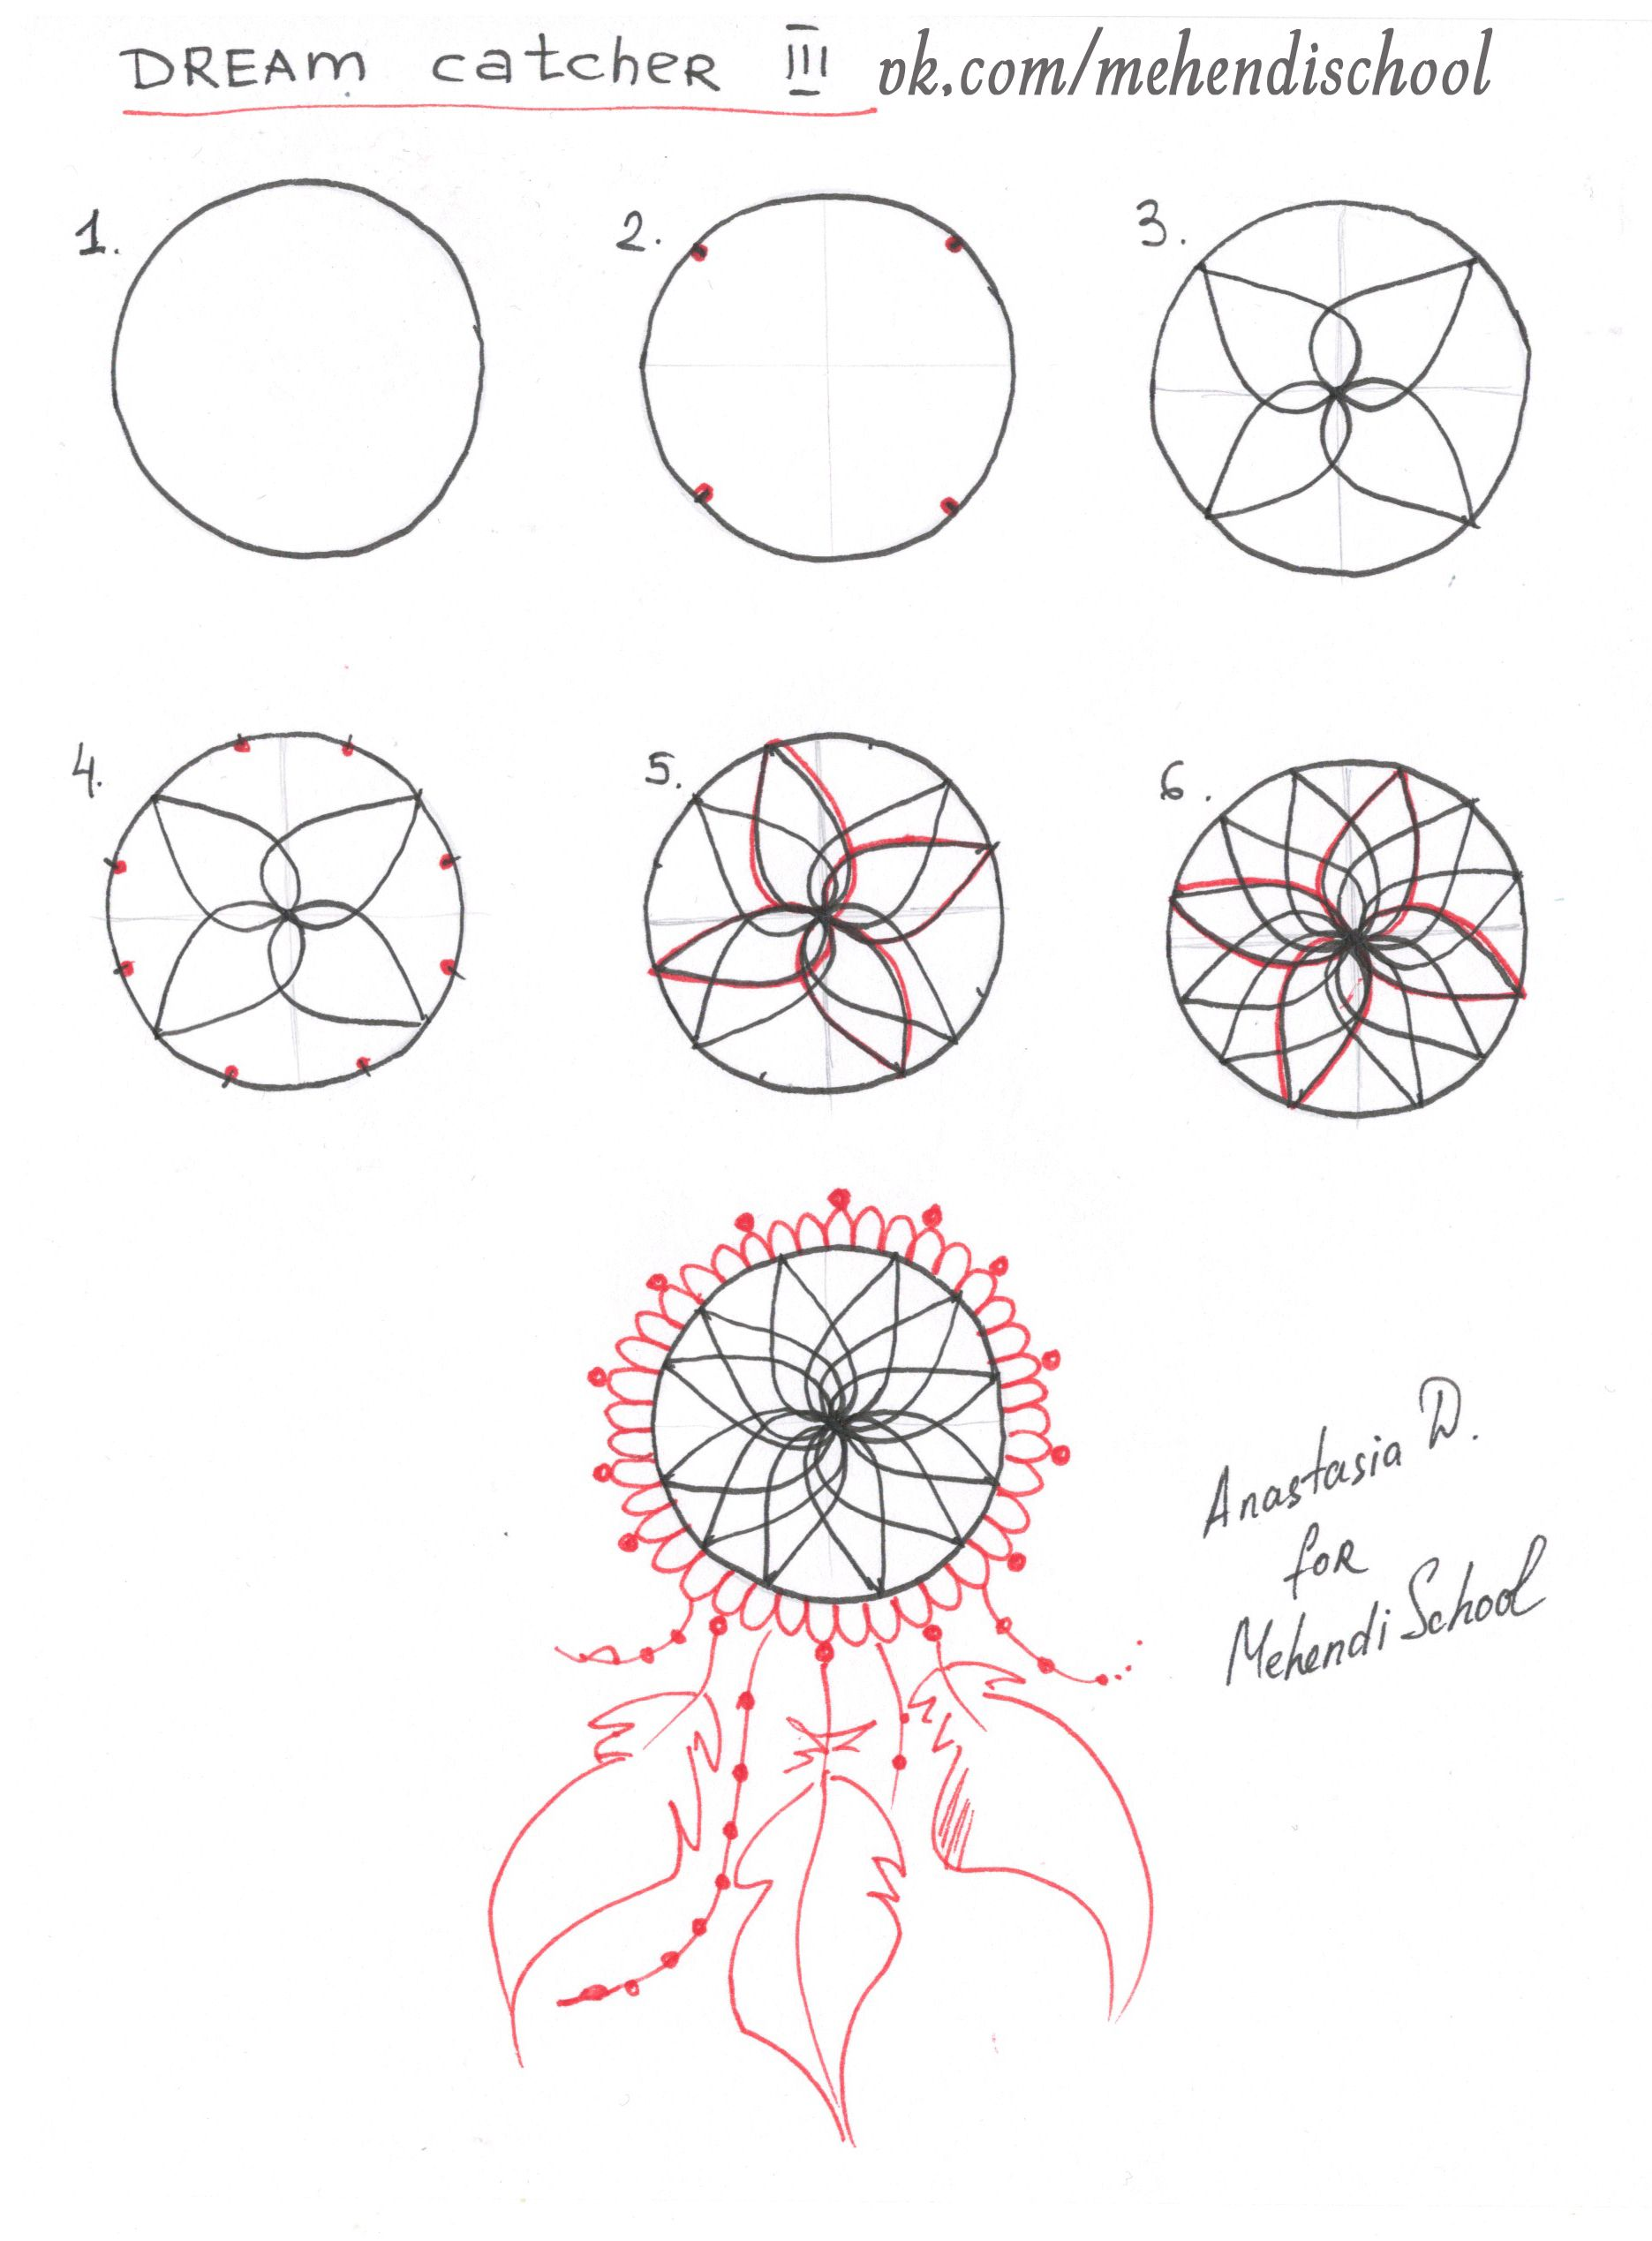 how to draw dream catcher tutorial diy henna